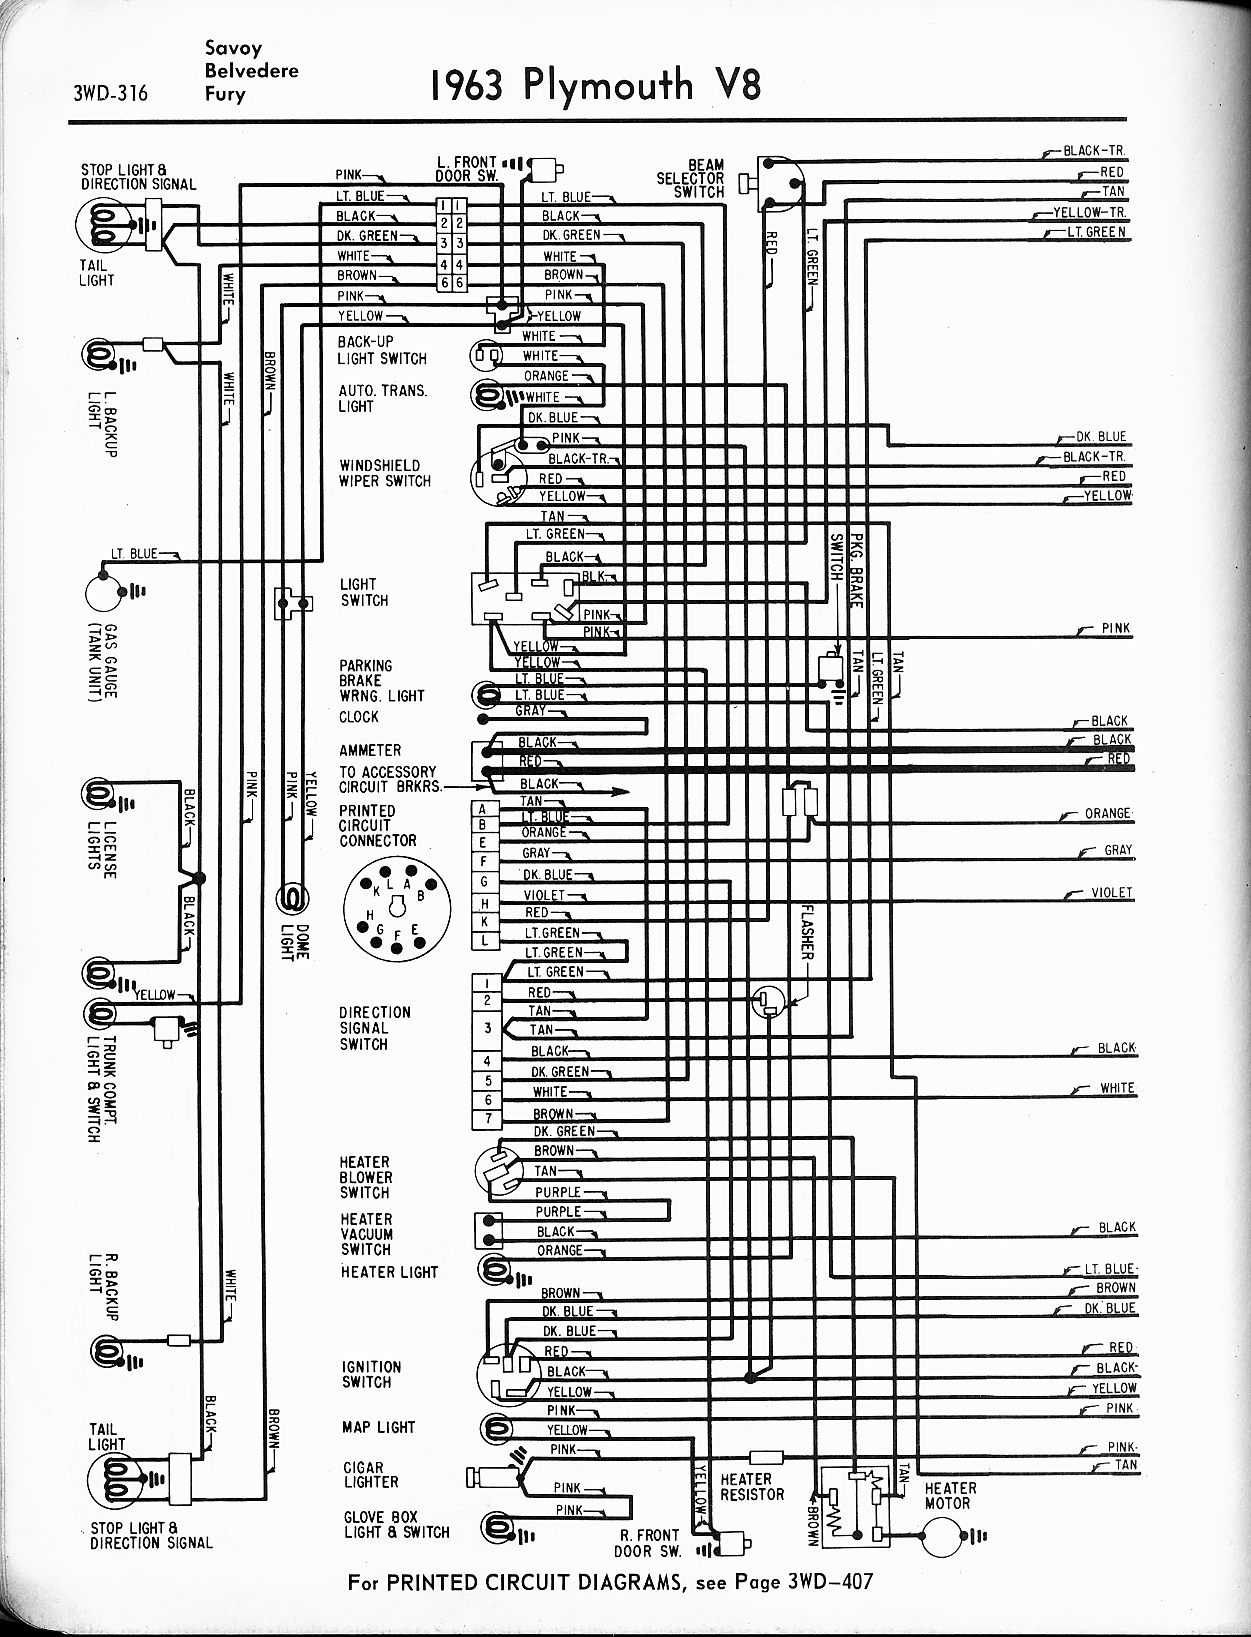 1956 1965 plymouth wiring the old car manual project rh oldcarmanualproject com 2001 Firebird Wiring Diagram Pontiac Sunfire Starter Wiring Diagram